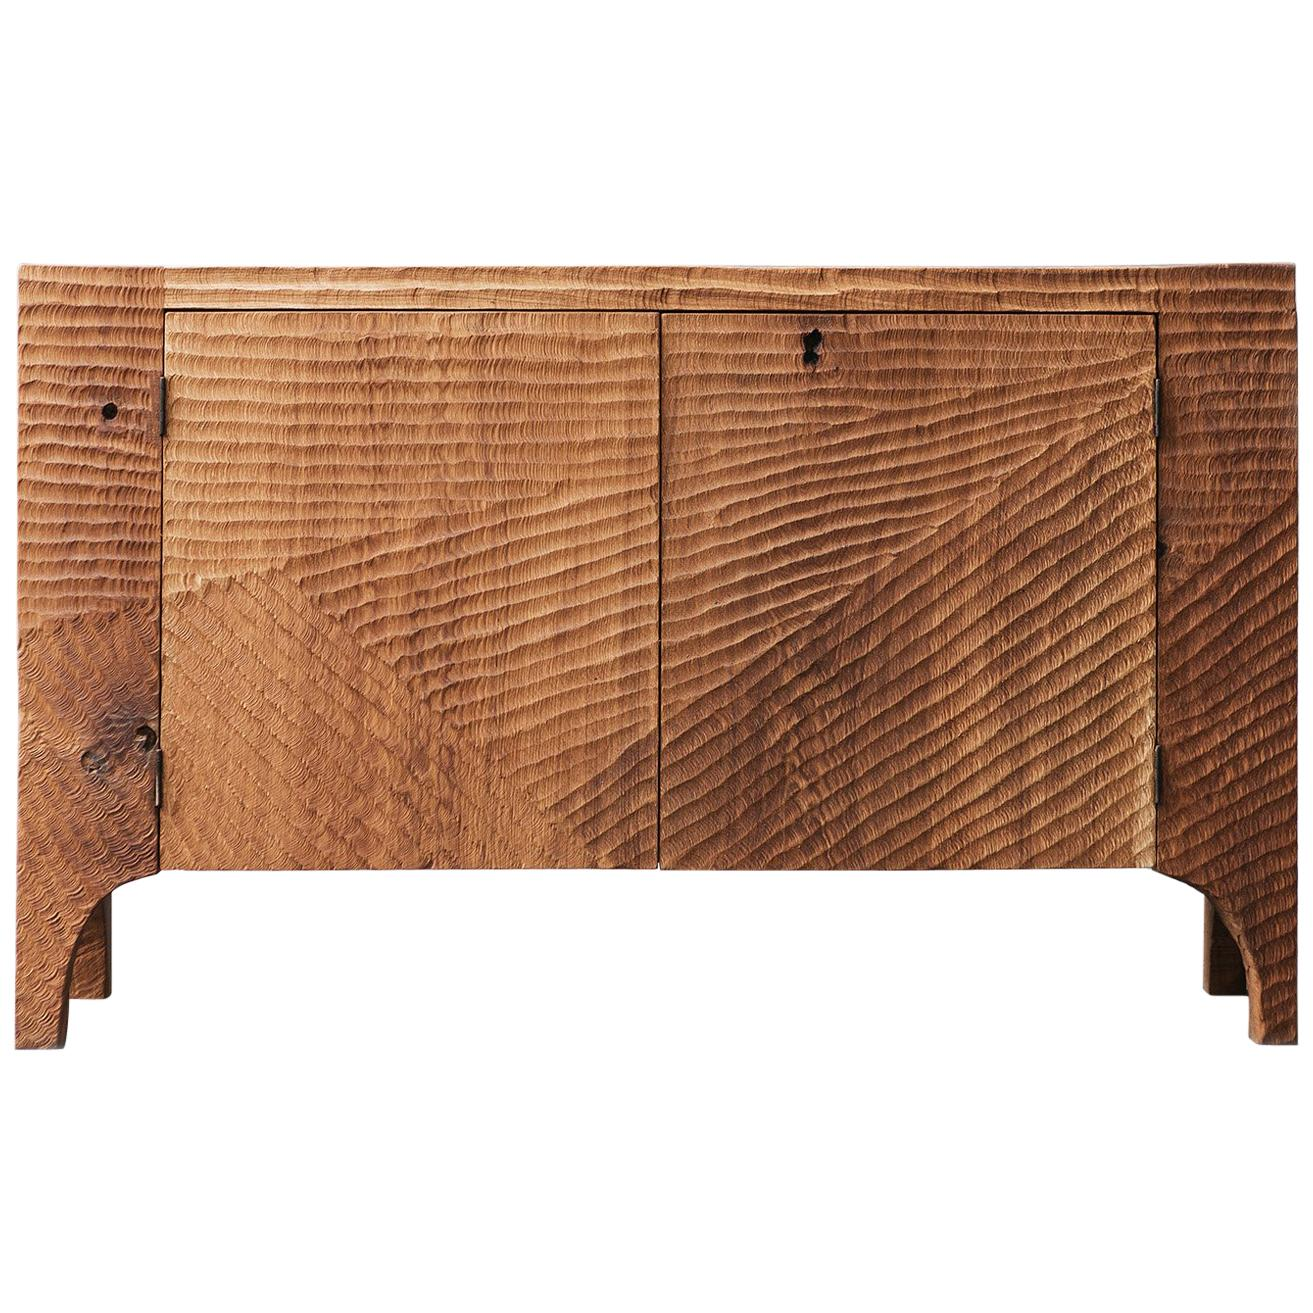 Contemporary Brutalist Style Commode in Solid Oak and Linseed Oil